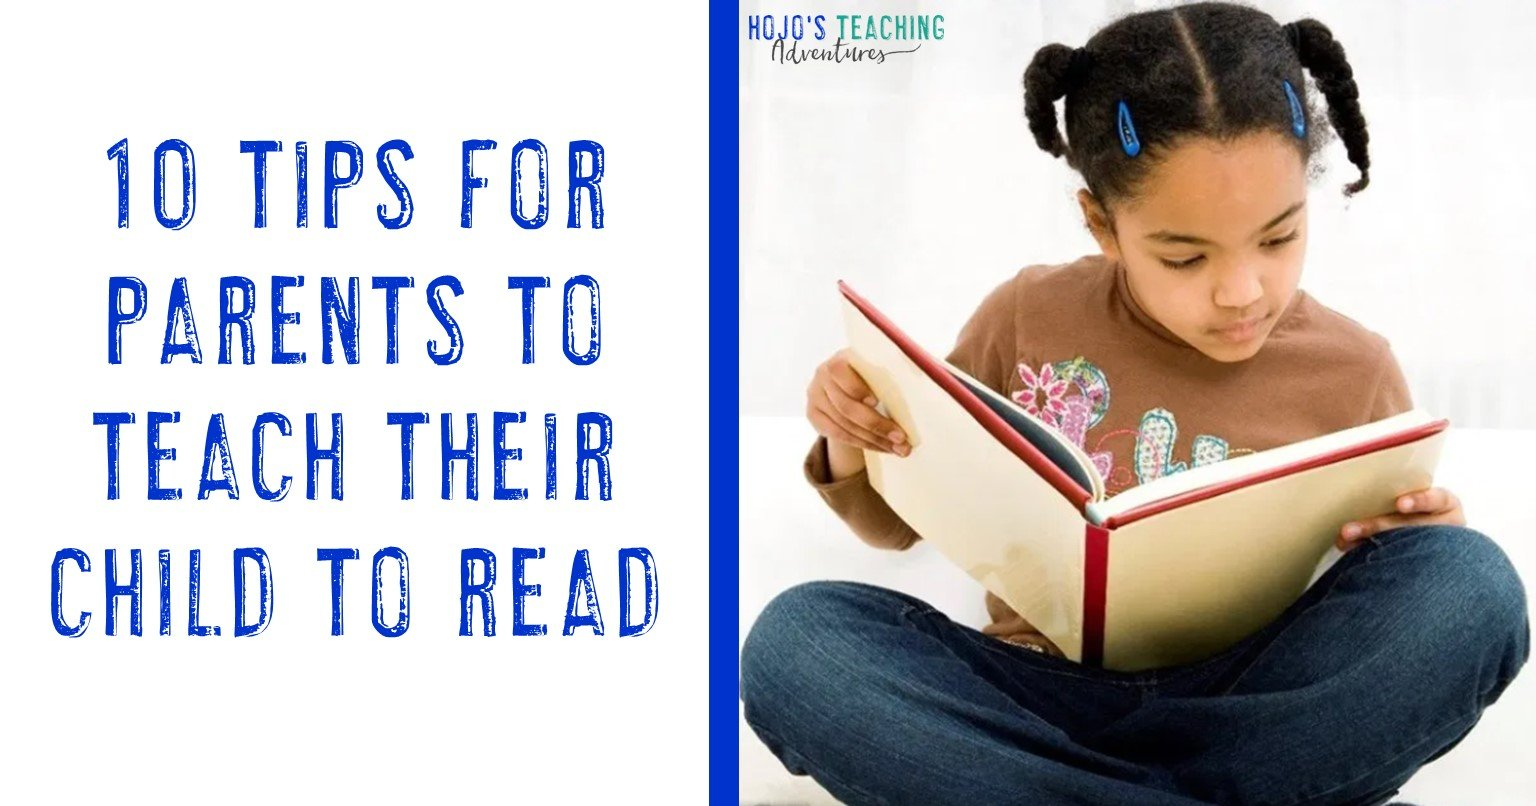 10 tips for parents to teach their child to read